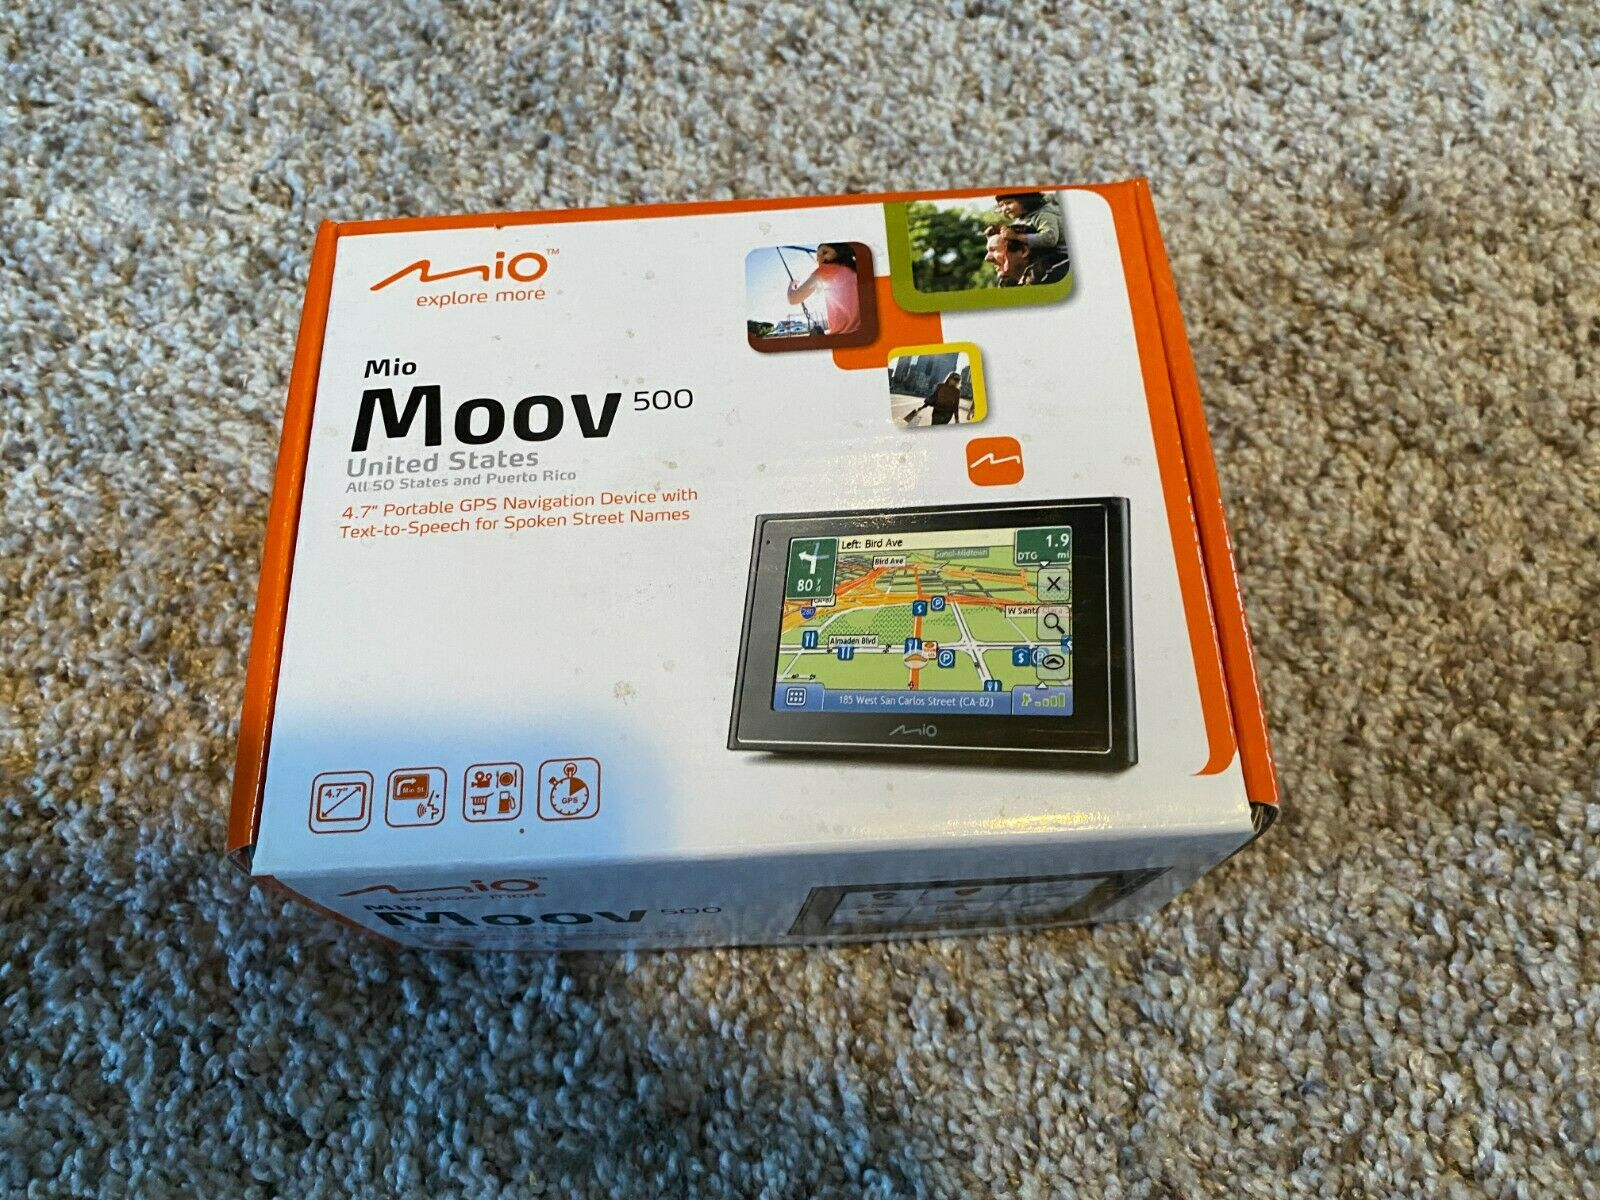 Mio Moov 500 Portable GPS Navigation Device Automotive Mountable - $28.00